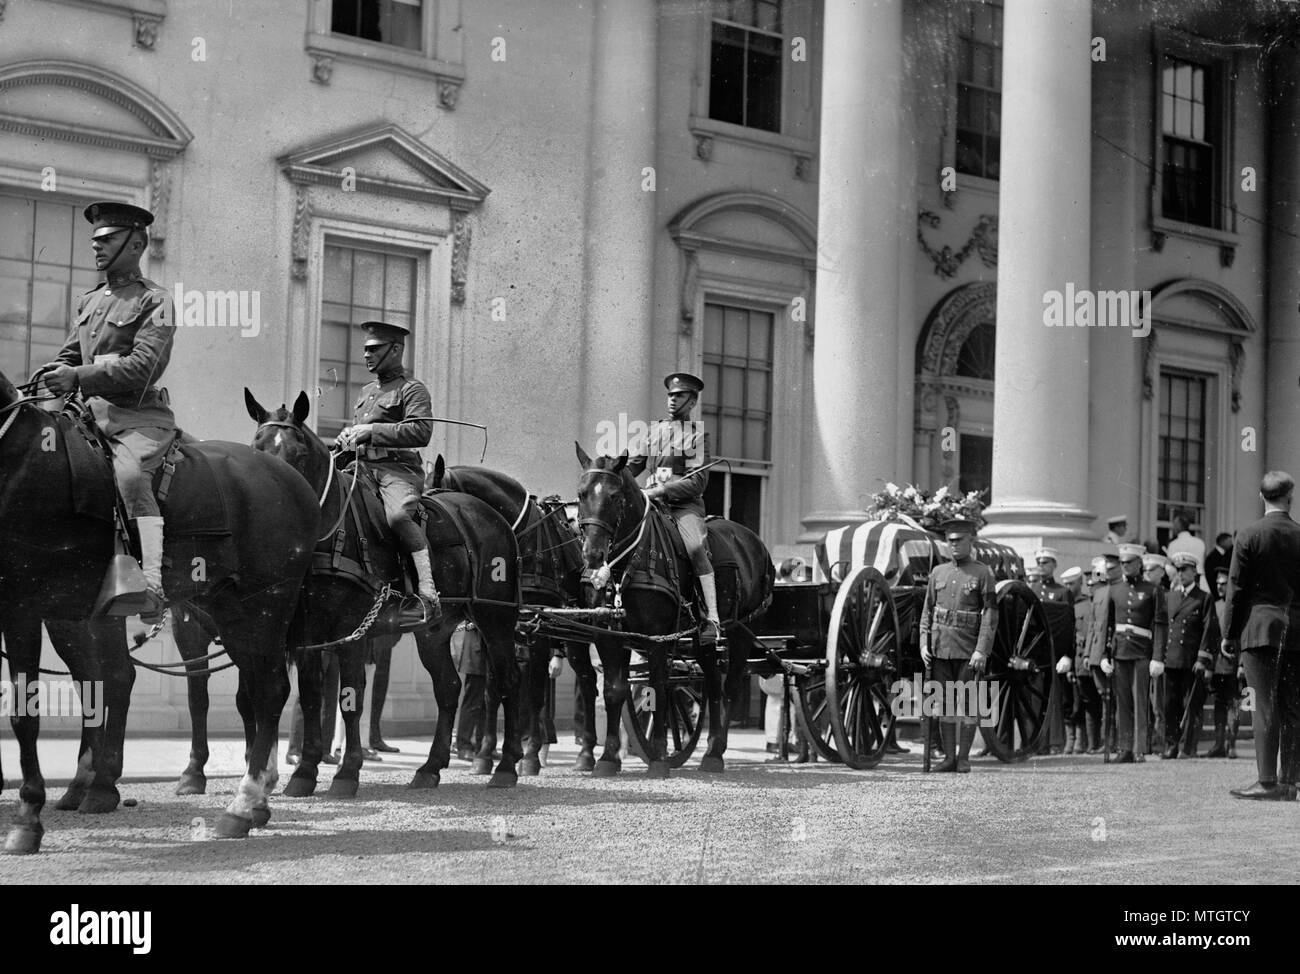 Funeral of US President Warren G. Harding. Horse drawn coffin in procession outside of the White House. 1923 - Stock Image